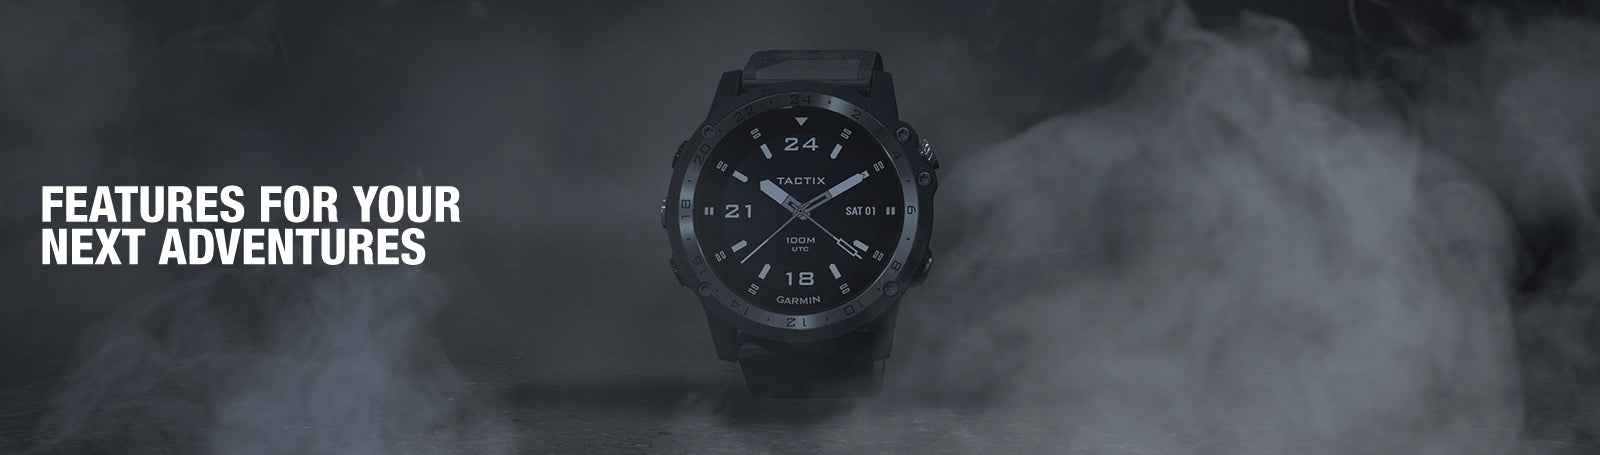 Garmin tactix Delta Sapphire Edition - Features for your next adventure.